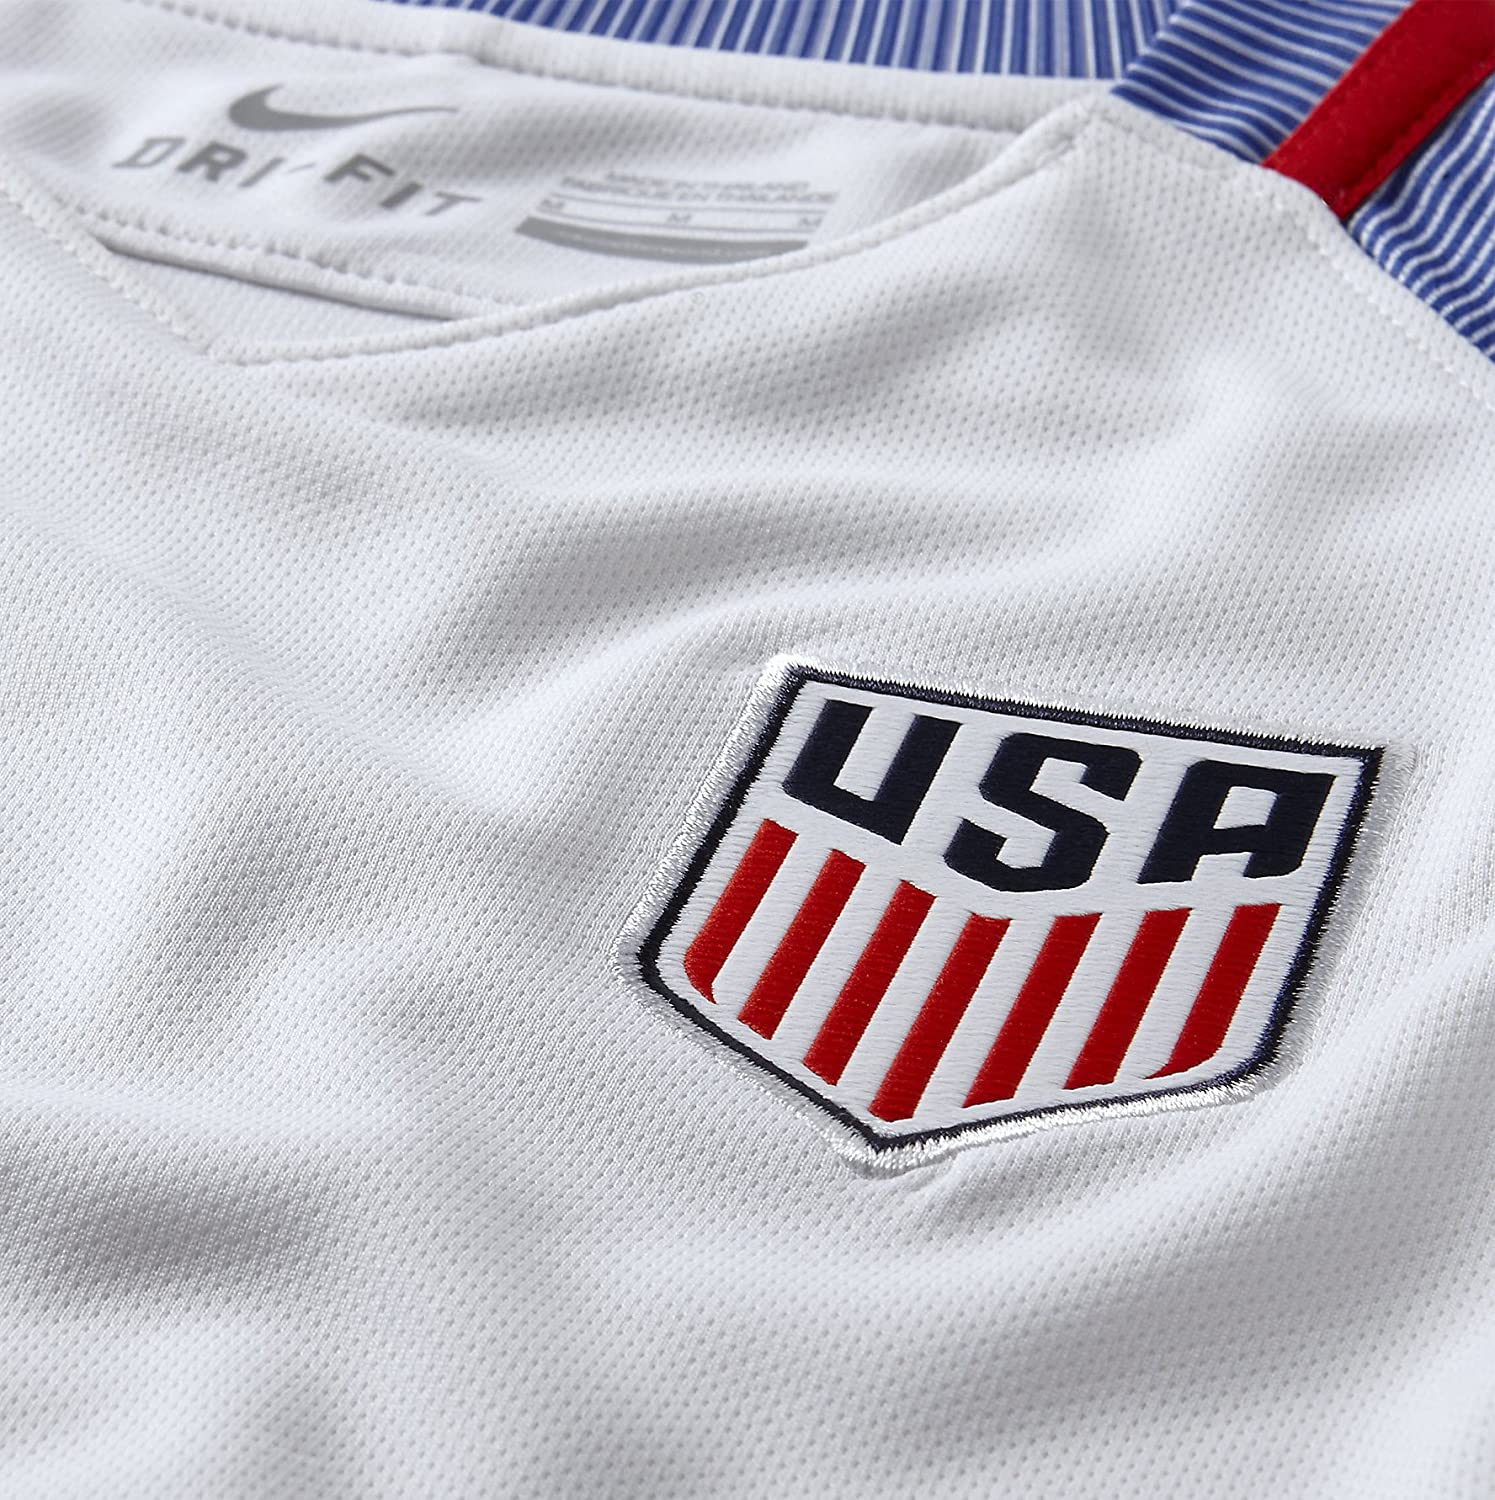 Amazon.com: Nike Rapinoe #15 USA Home - Camiseta de fútbol ...